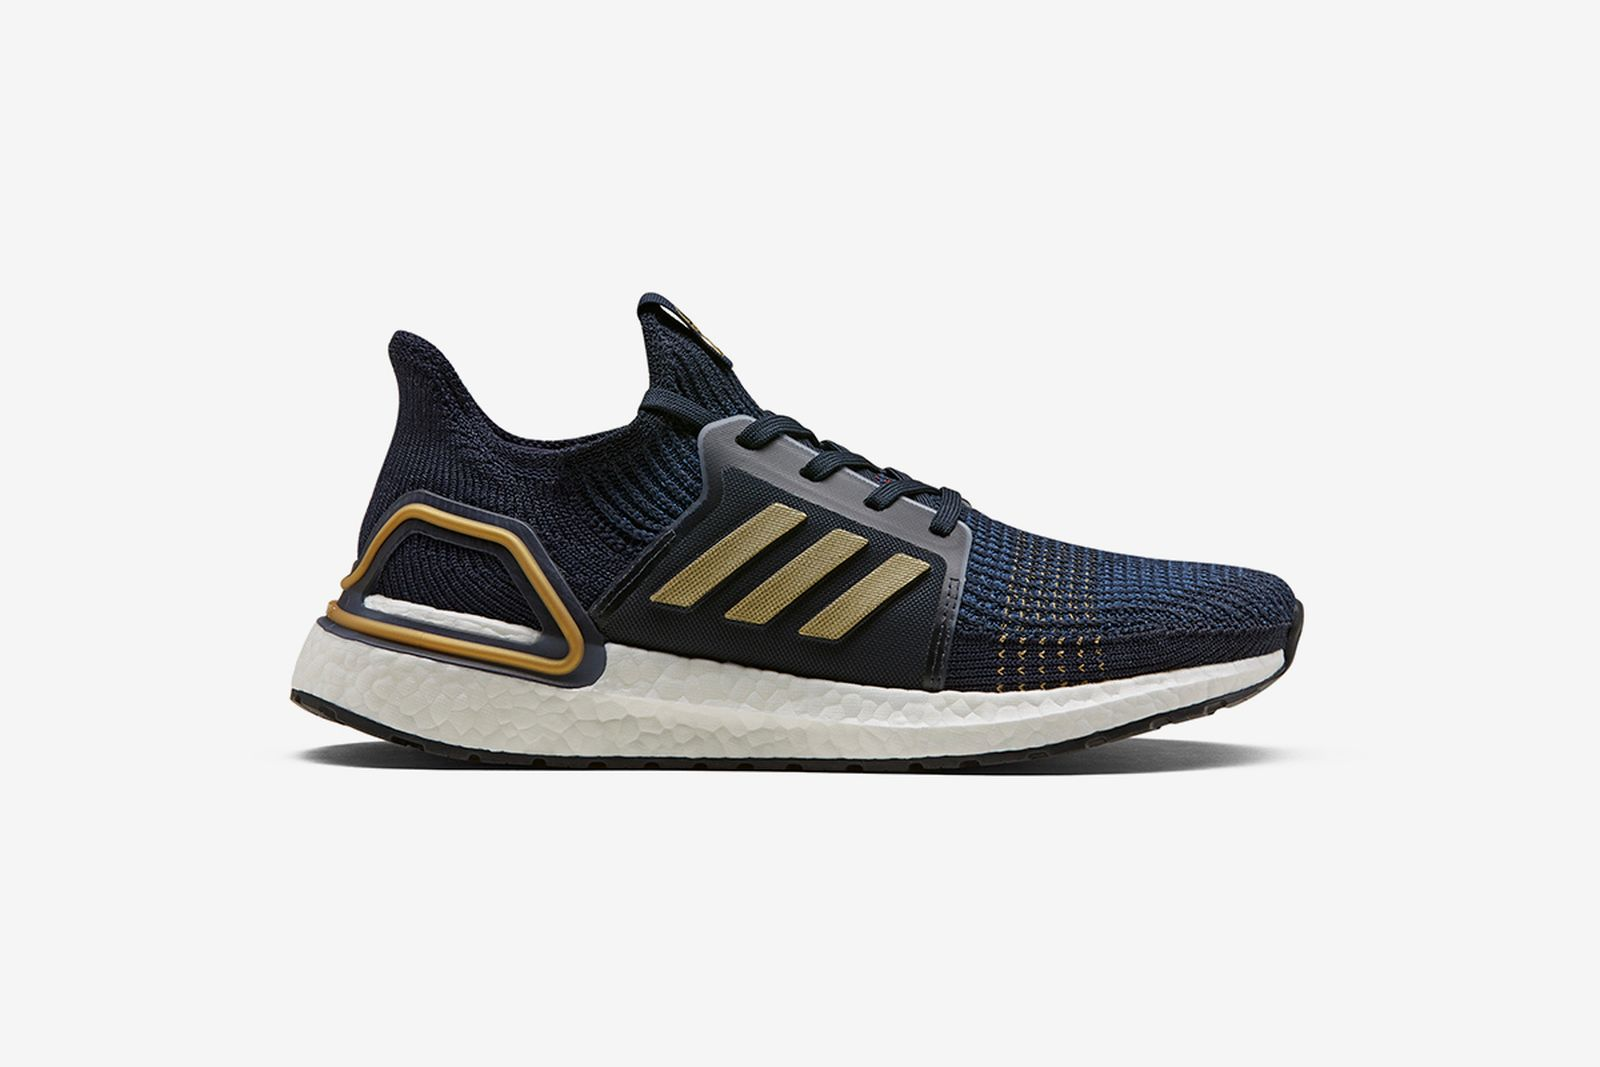 adidas consortium ultraboost 19 release date price product adidas Ultraboost 19